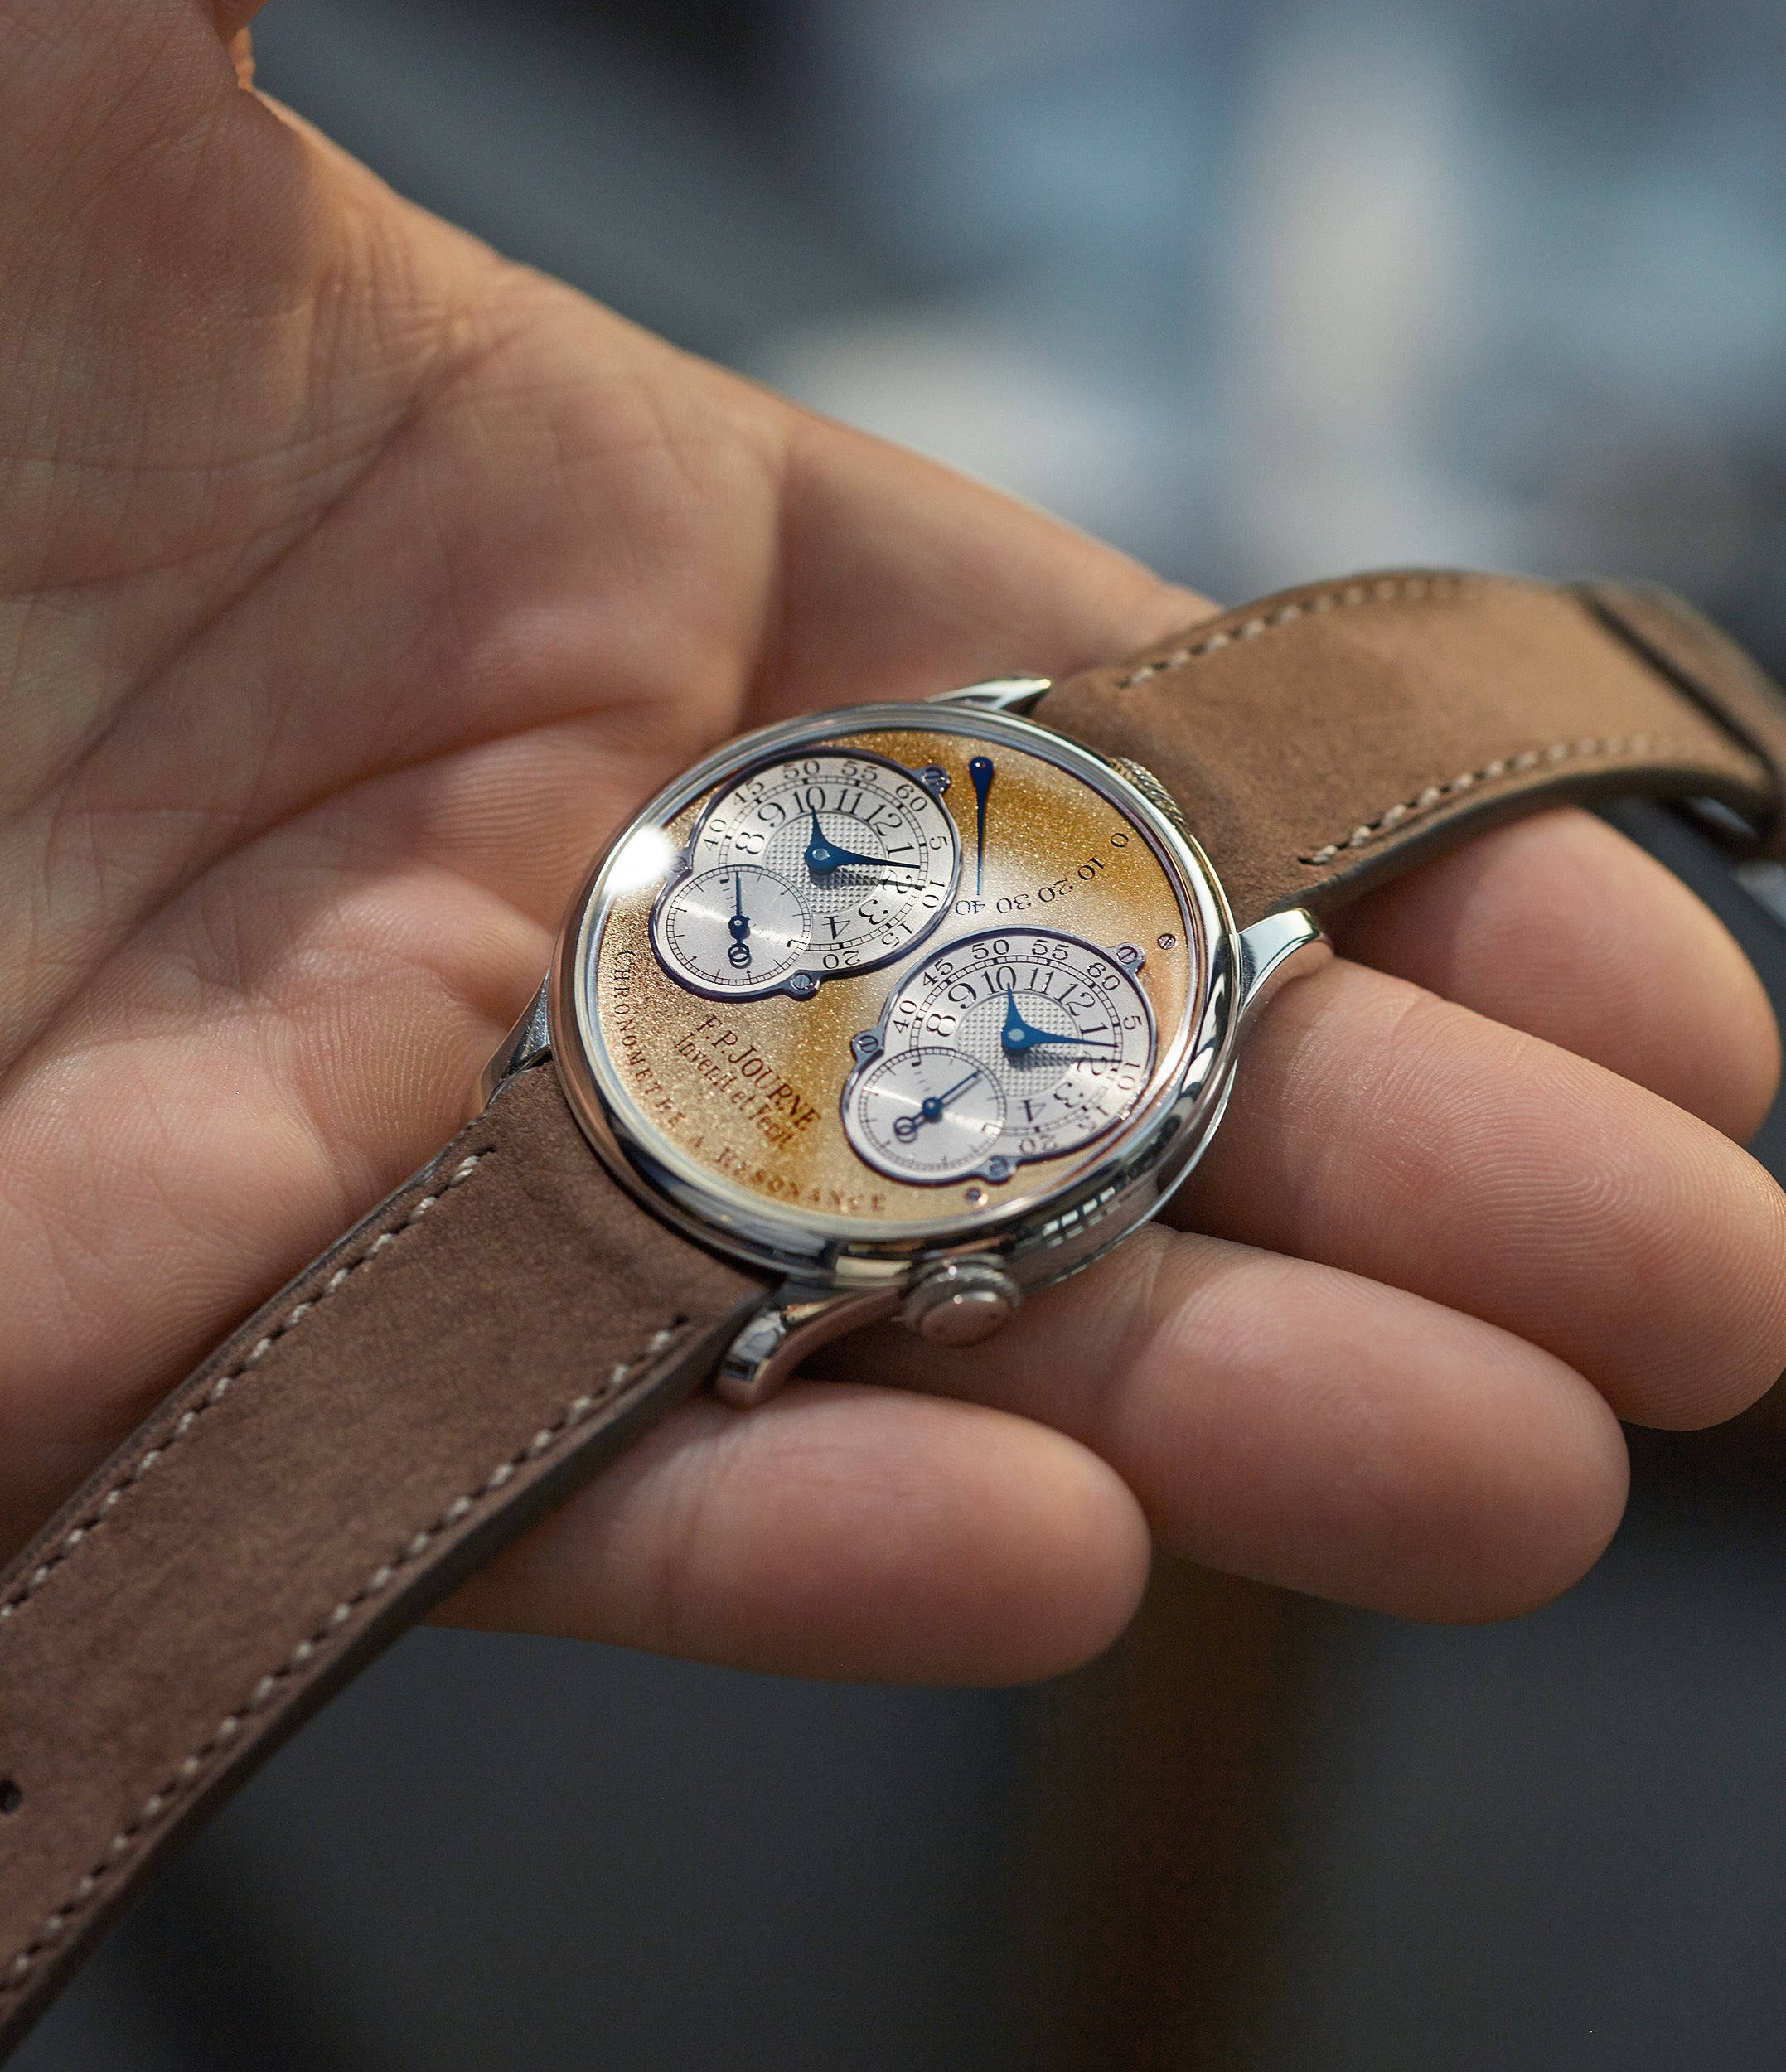 hands-on with F. P. Journe Pre-Souscription Chronomètre à Résonance 38mm platinum brass movement early independent watchmaker shimmery gold dial watch for sale online at A Collected Man London specialist rare watches